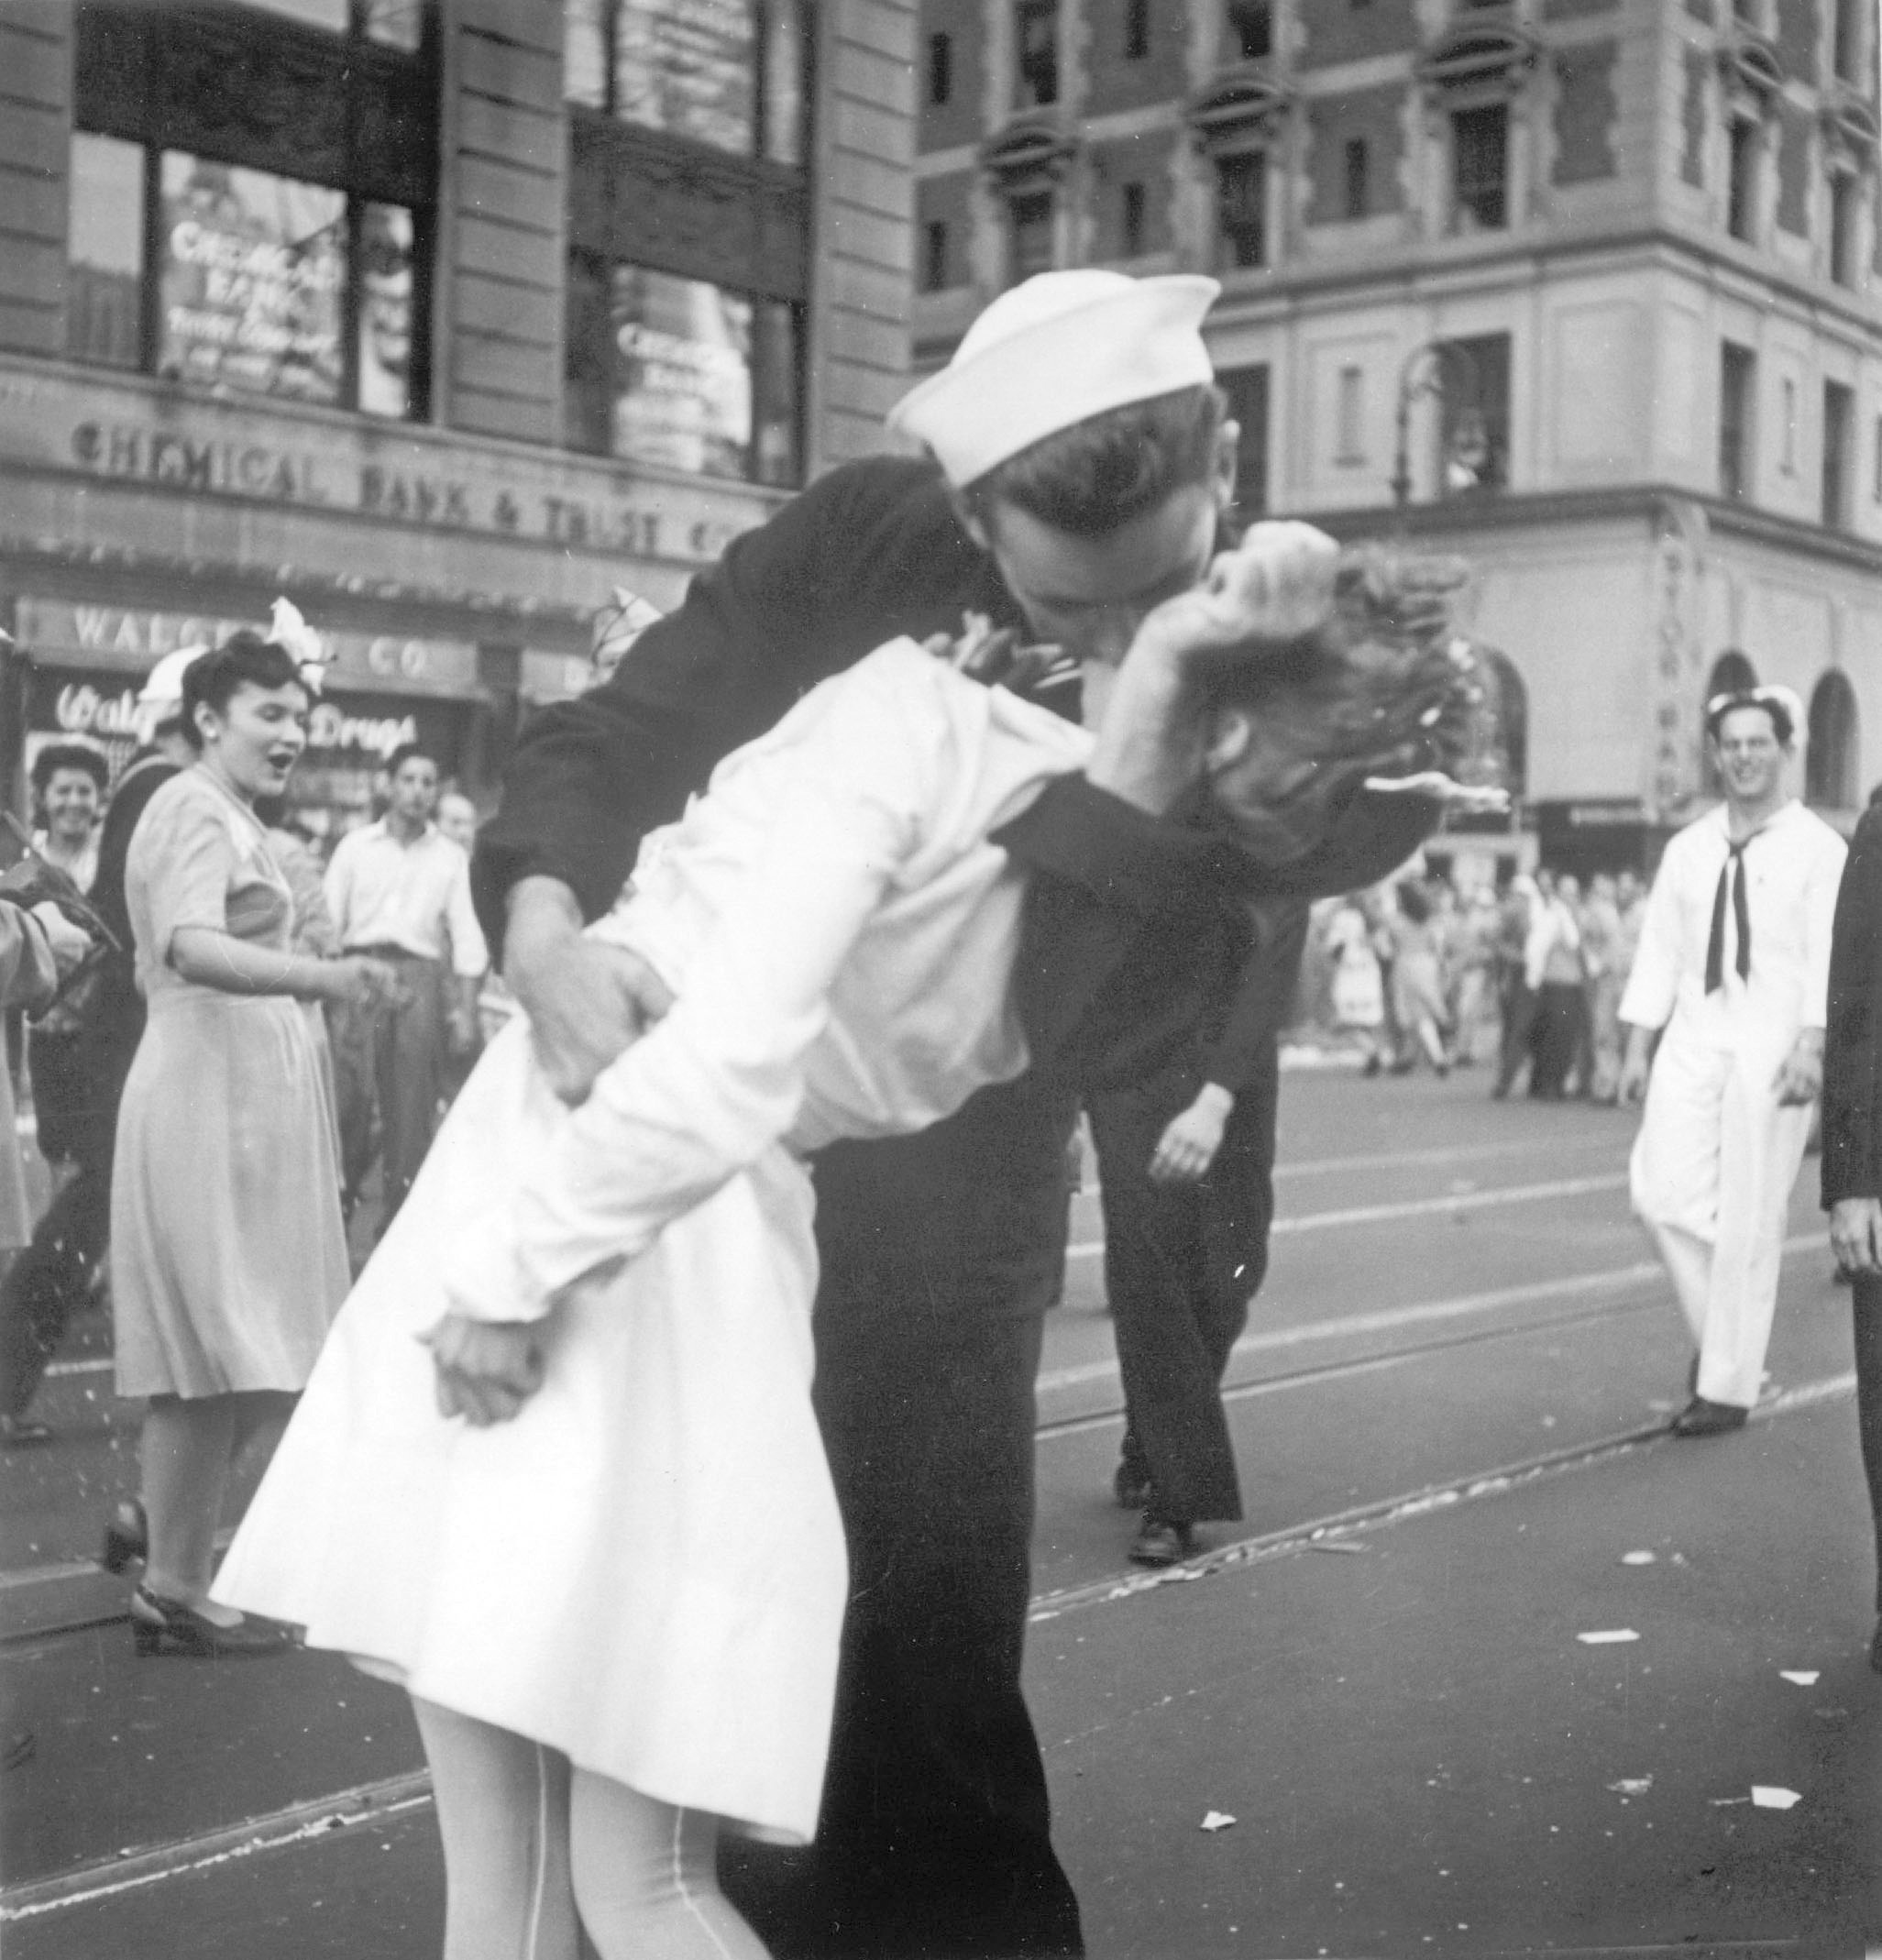 FILE - In a photo provided by the U.S. Navy, a sailor and a woman kiss in New York's Times Square, as people celebrate the end of World War II, Aug. 14, 1945. George Mendonsa was the young sailor in the photo.